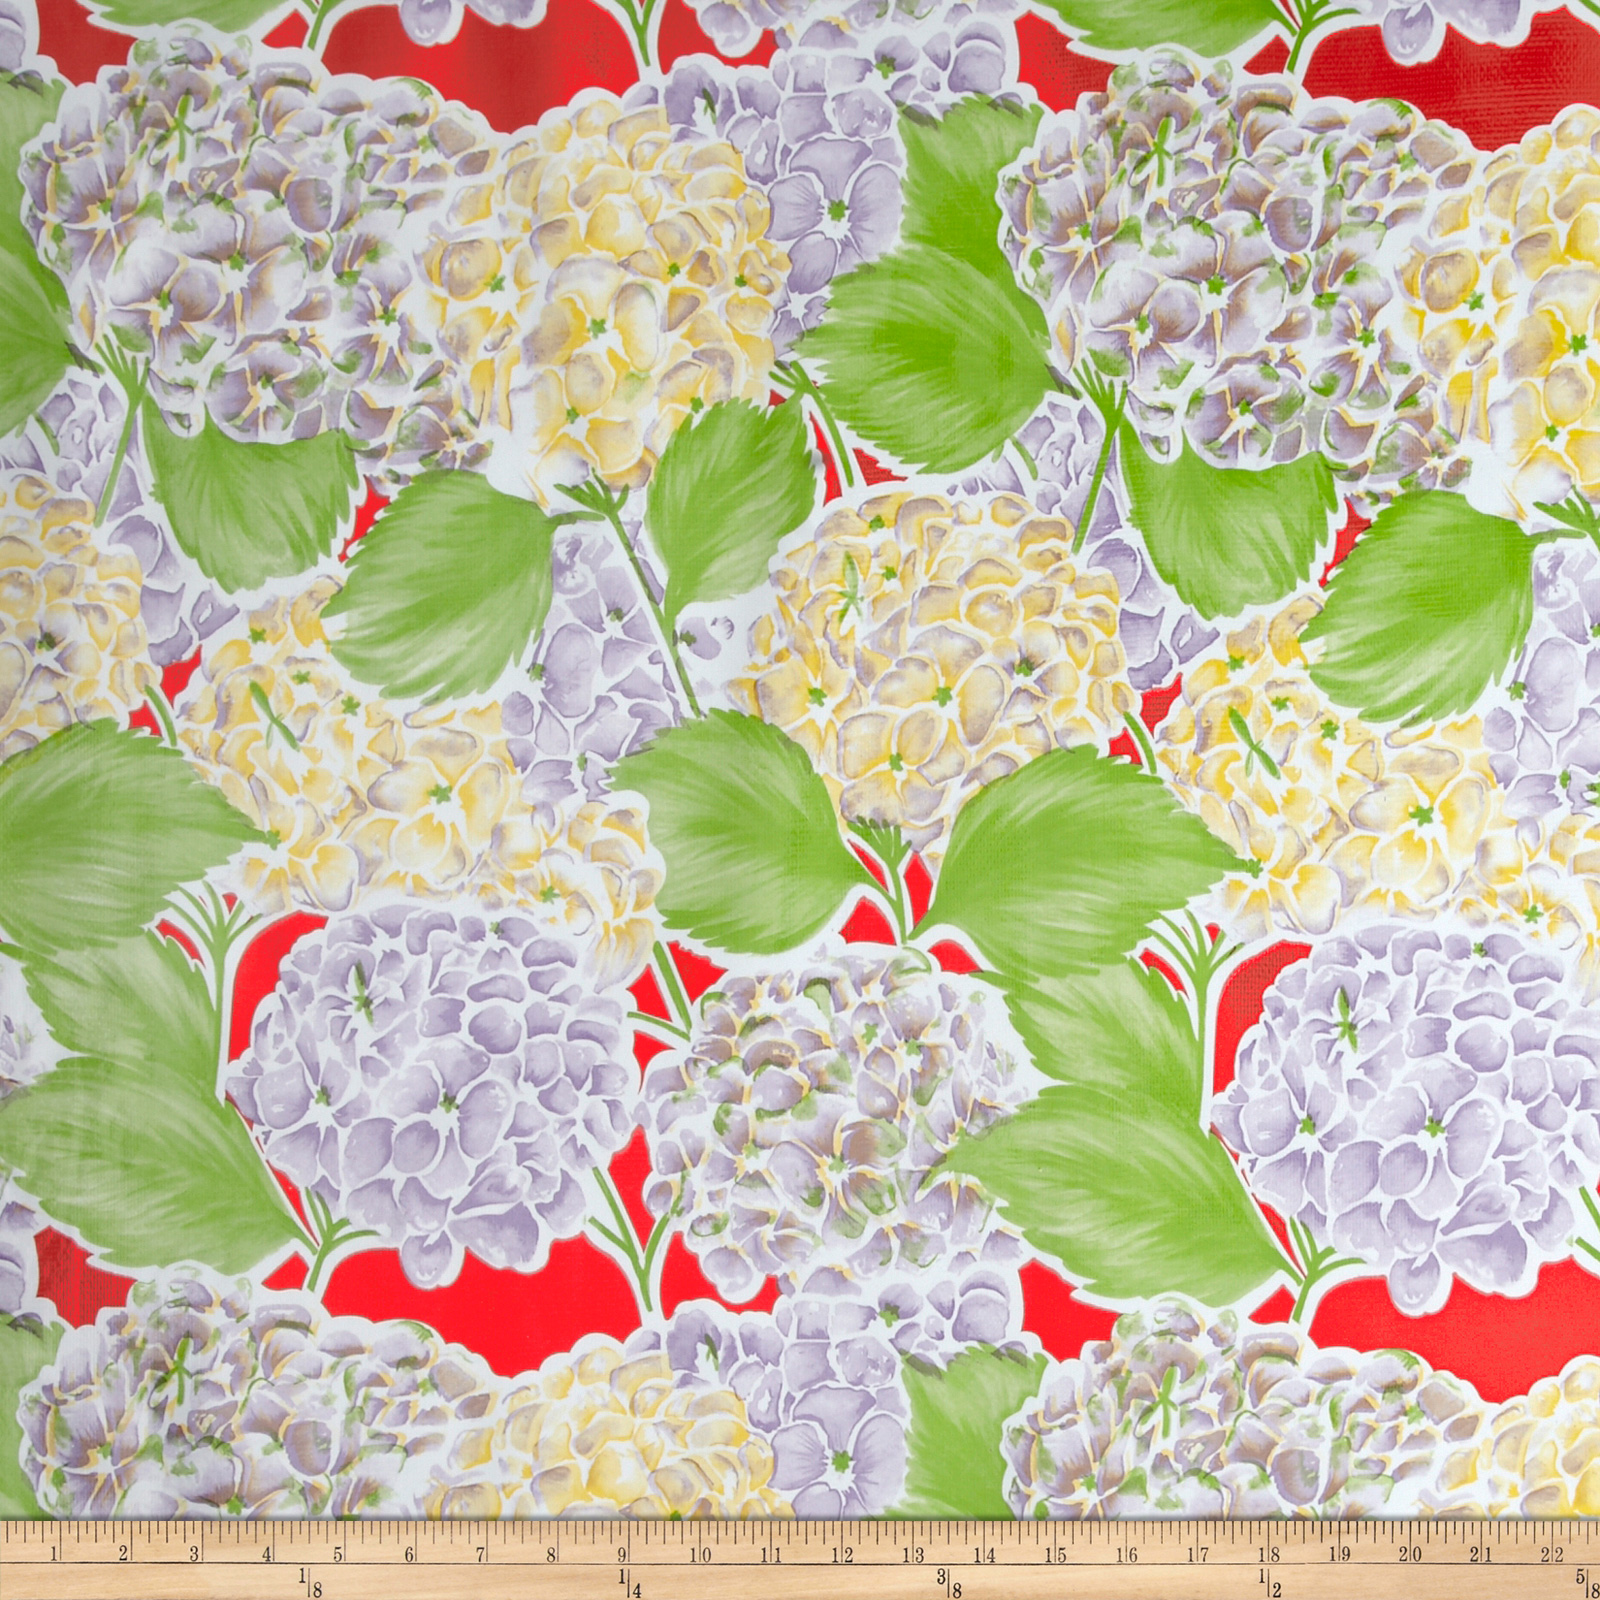 Oilcloth Lille Hydrangea Red Fabric by Oilcloth International in USA